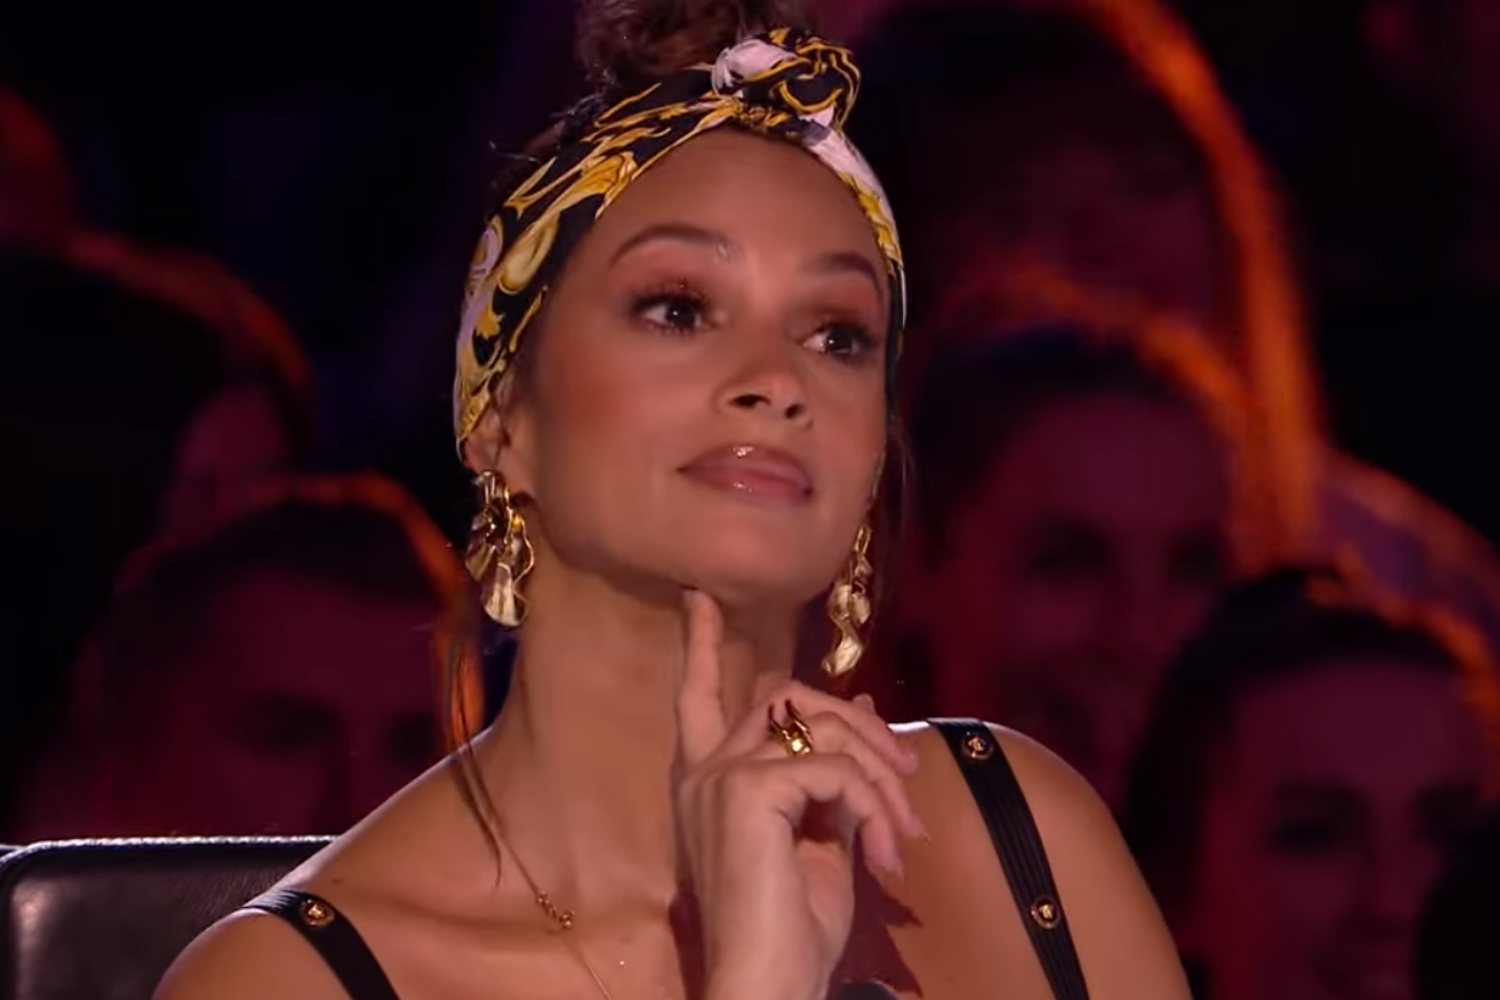 BGT viewers slam 'rude' Alesha Dixon and accuse her of being 'bitter' over last night's Golden Buzzer